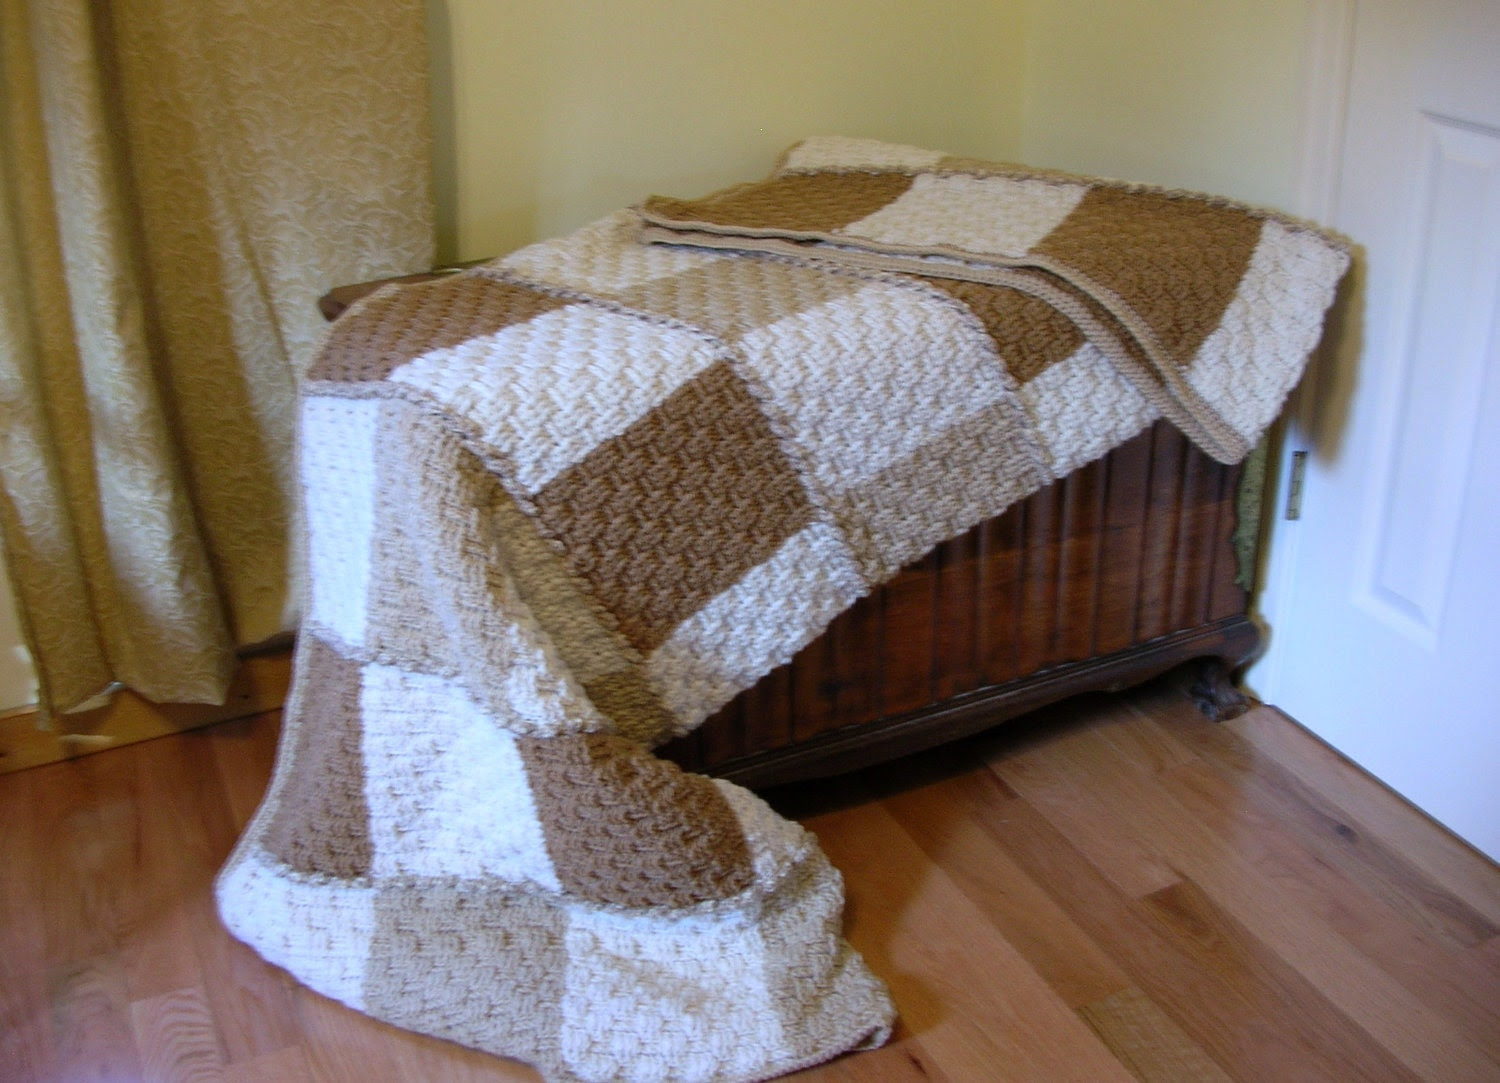 Crochet Afghan Neutral Colors  Basketweave Stitch Large and Cozy Handmade Littlestsister - LittlestSister